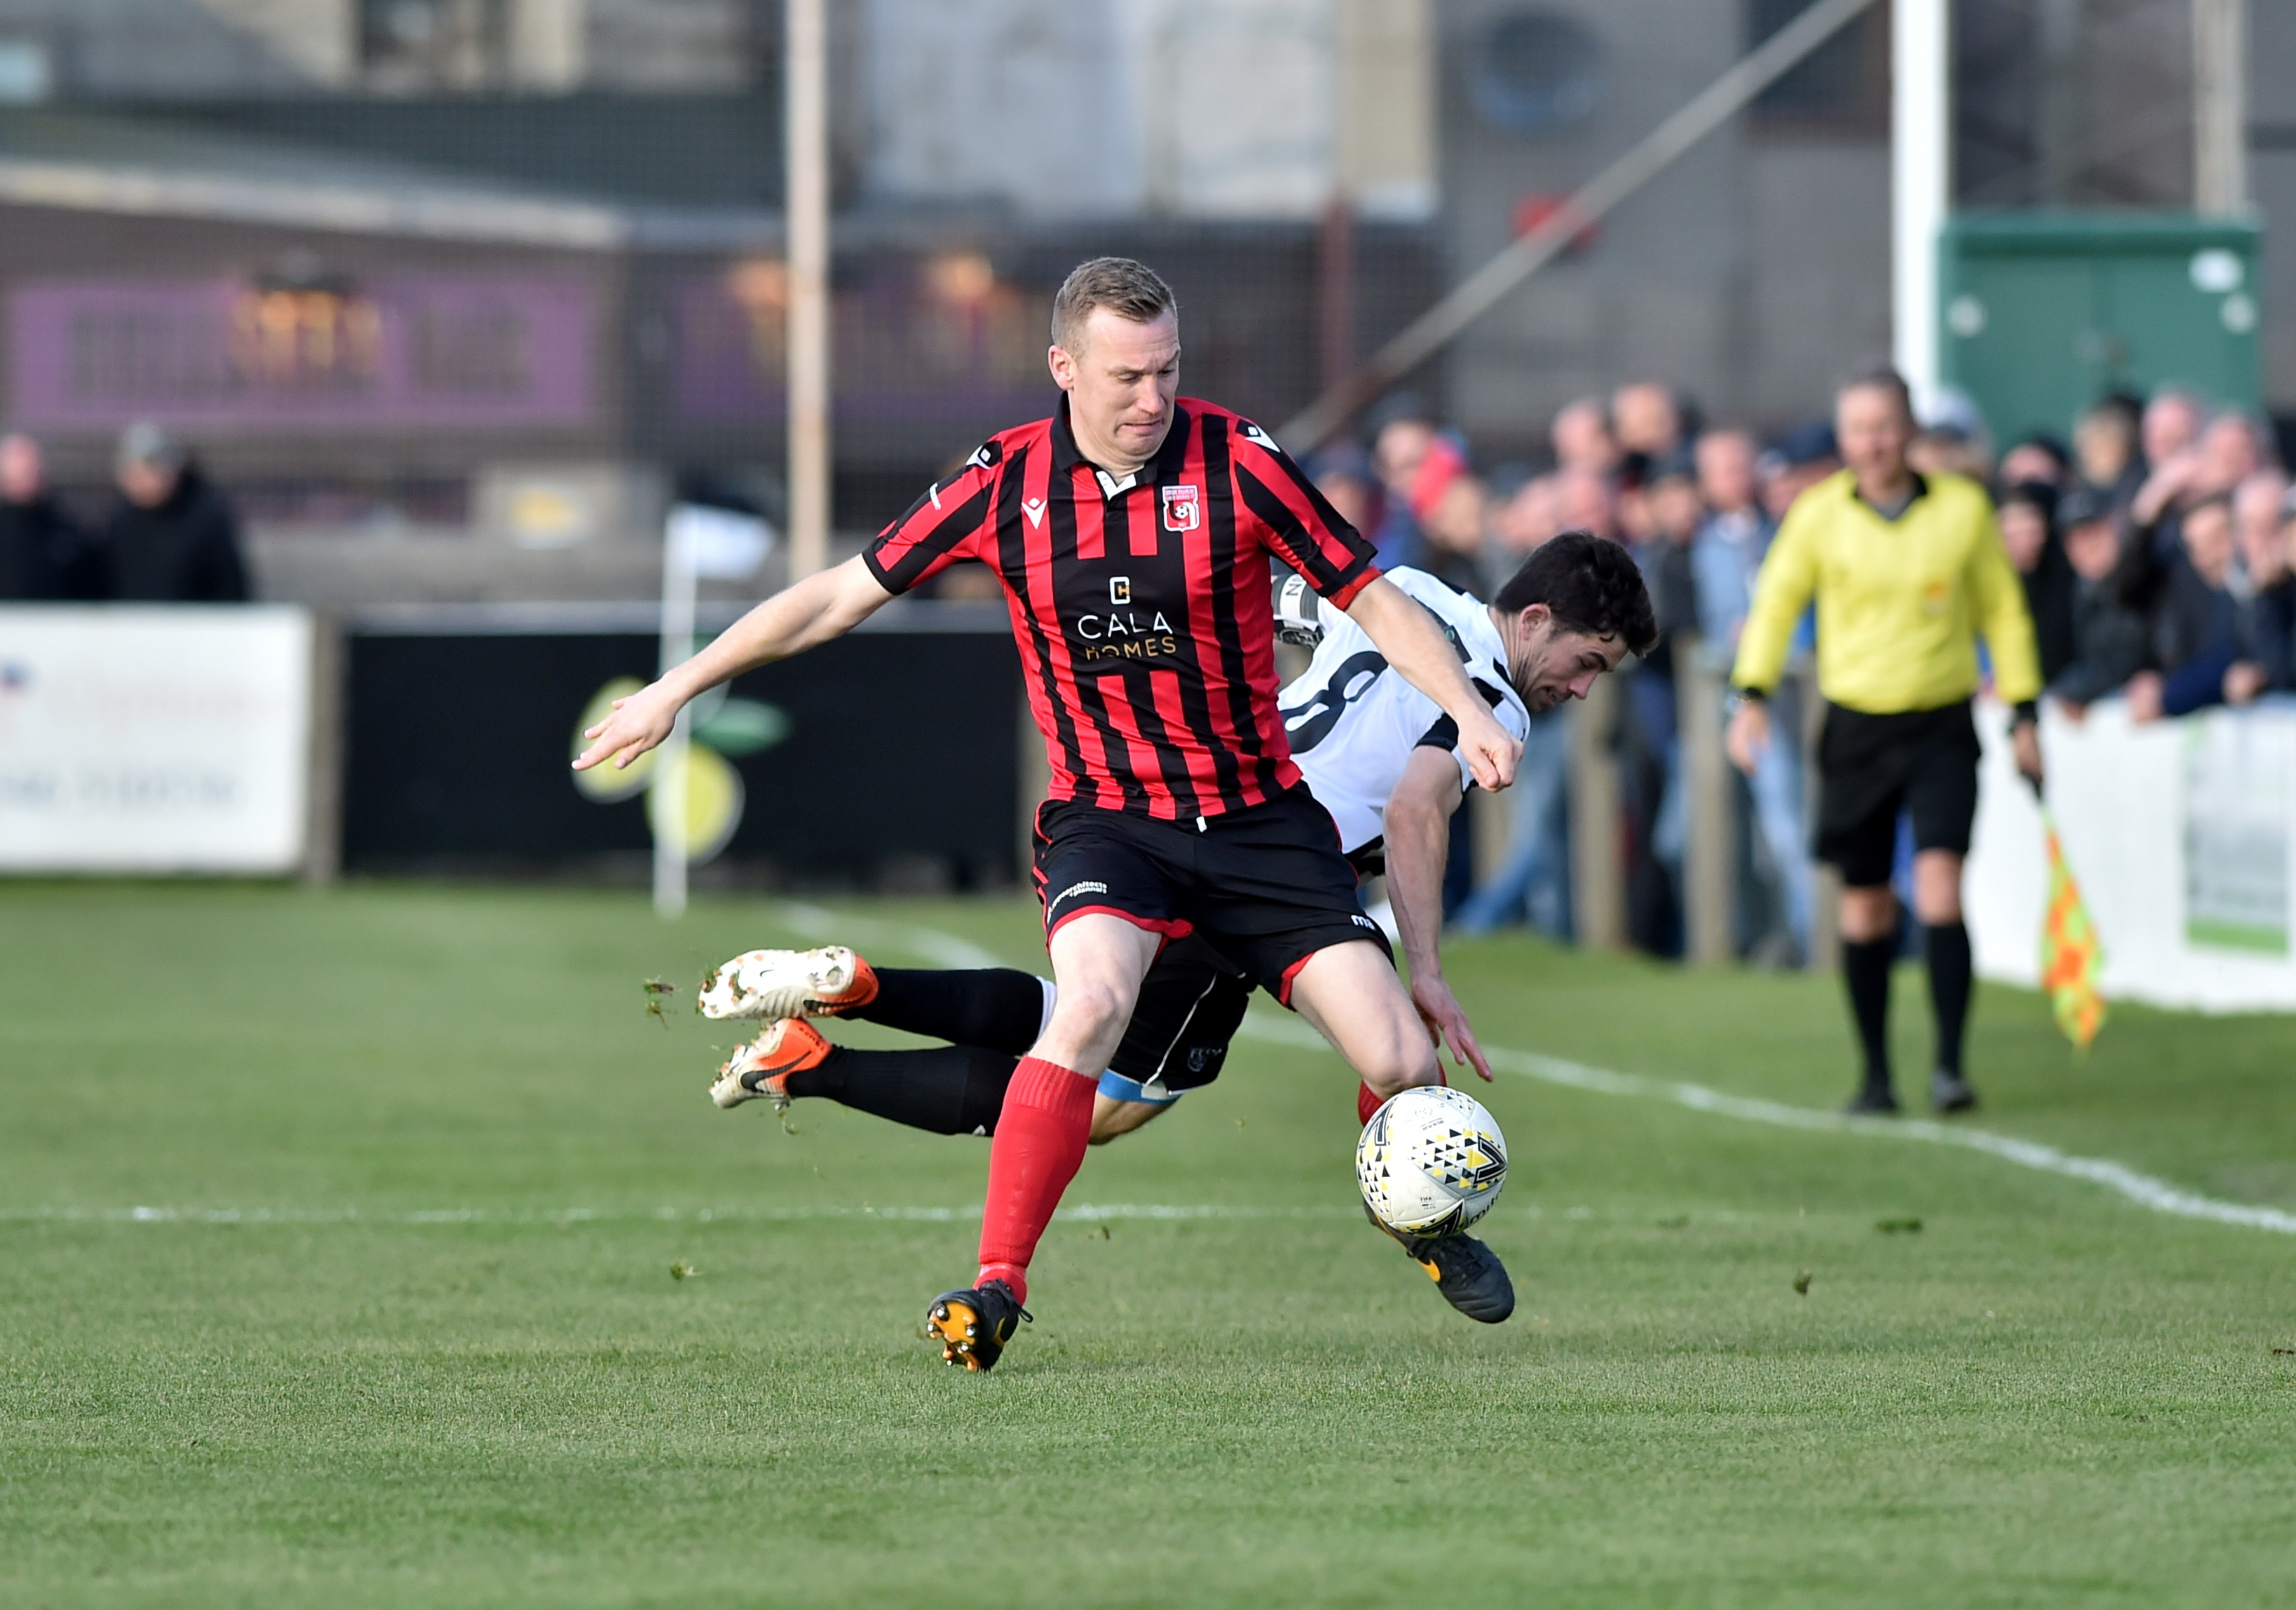 Eric Watson joined Inverurie Locos in 2019.